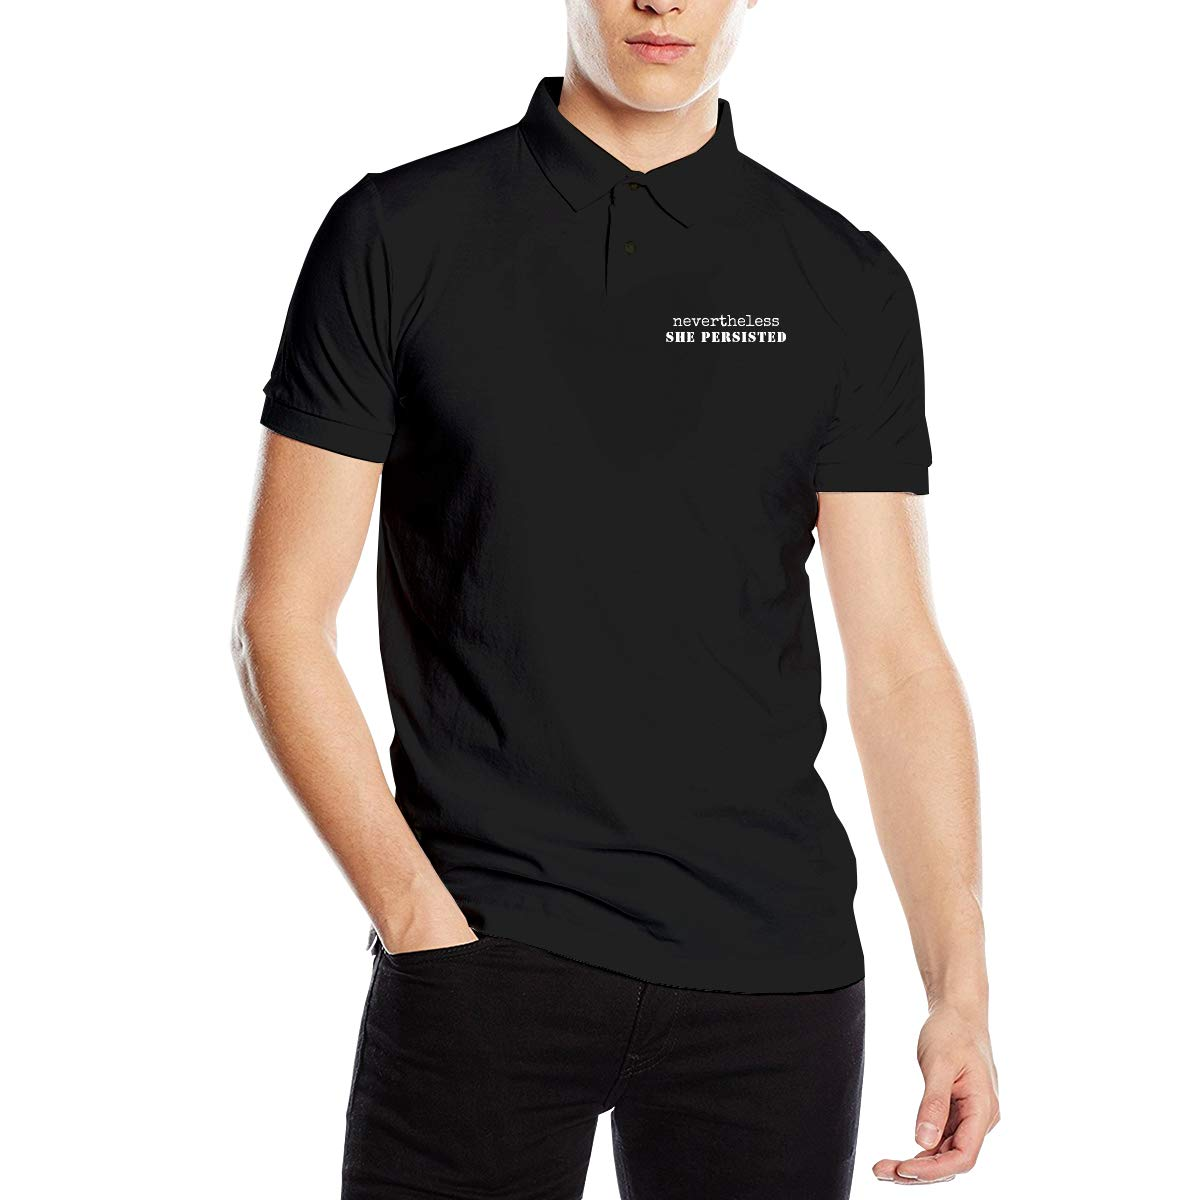 Cjlrqone She Persisted Mens Personality Polo Shirts XL Black